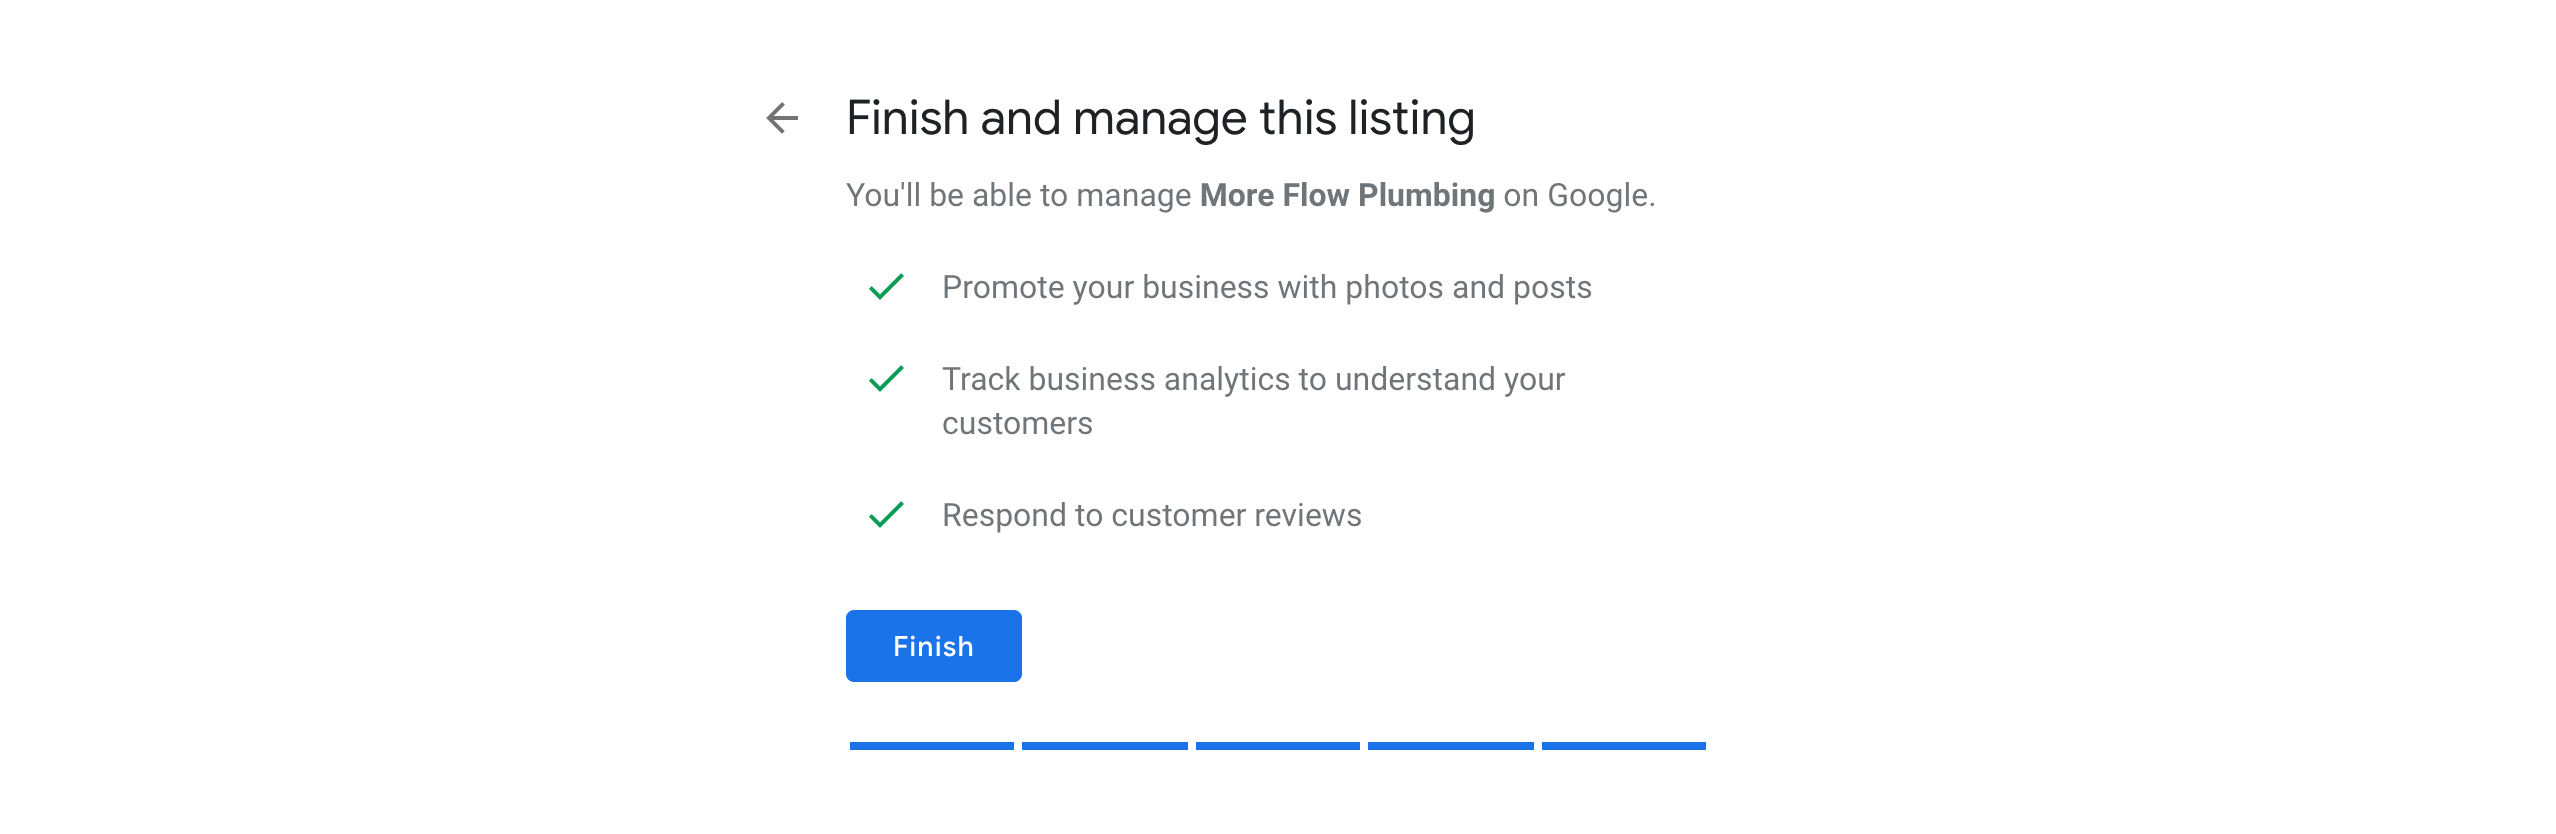 A notification to continue managing and adding information to Google My Business.